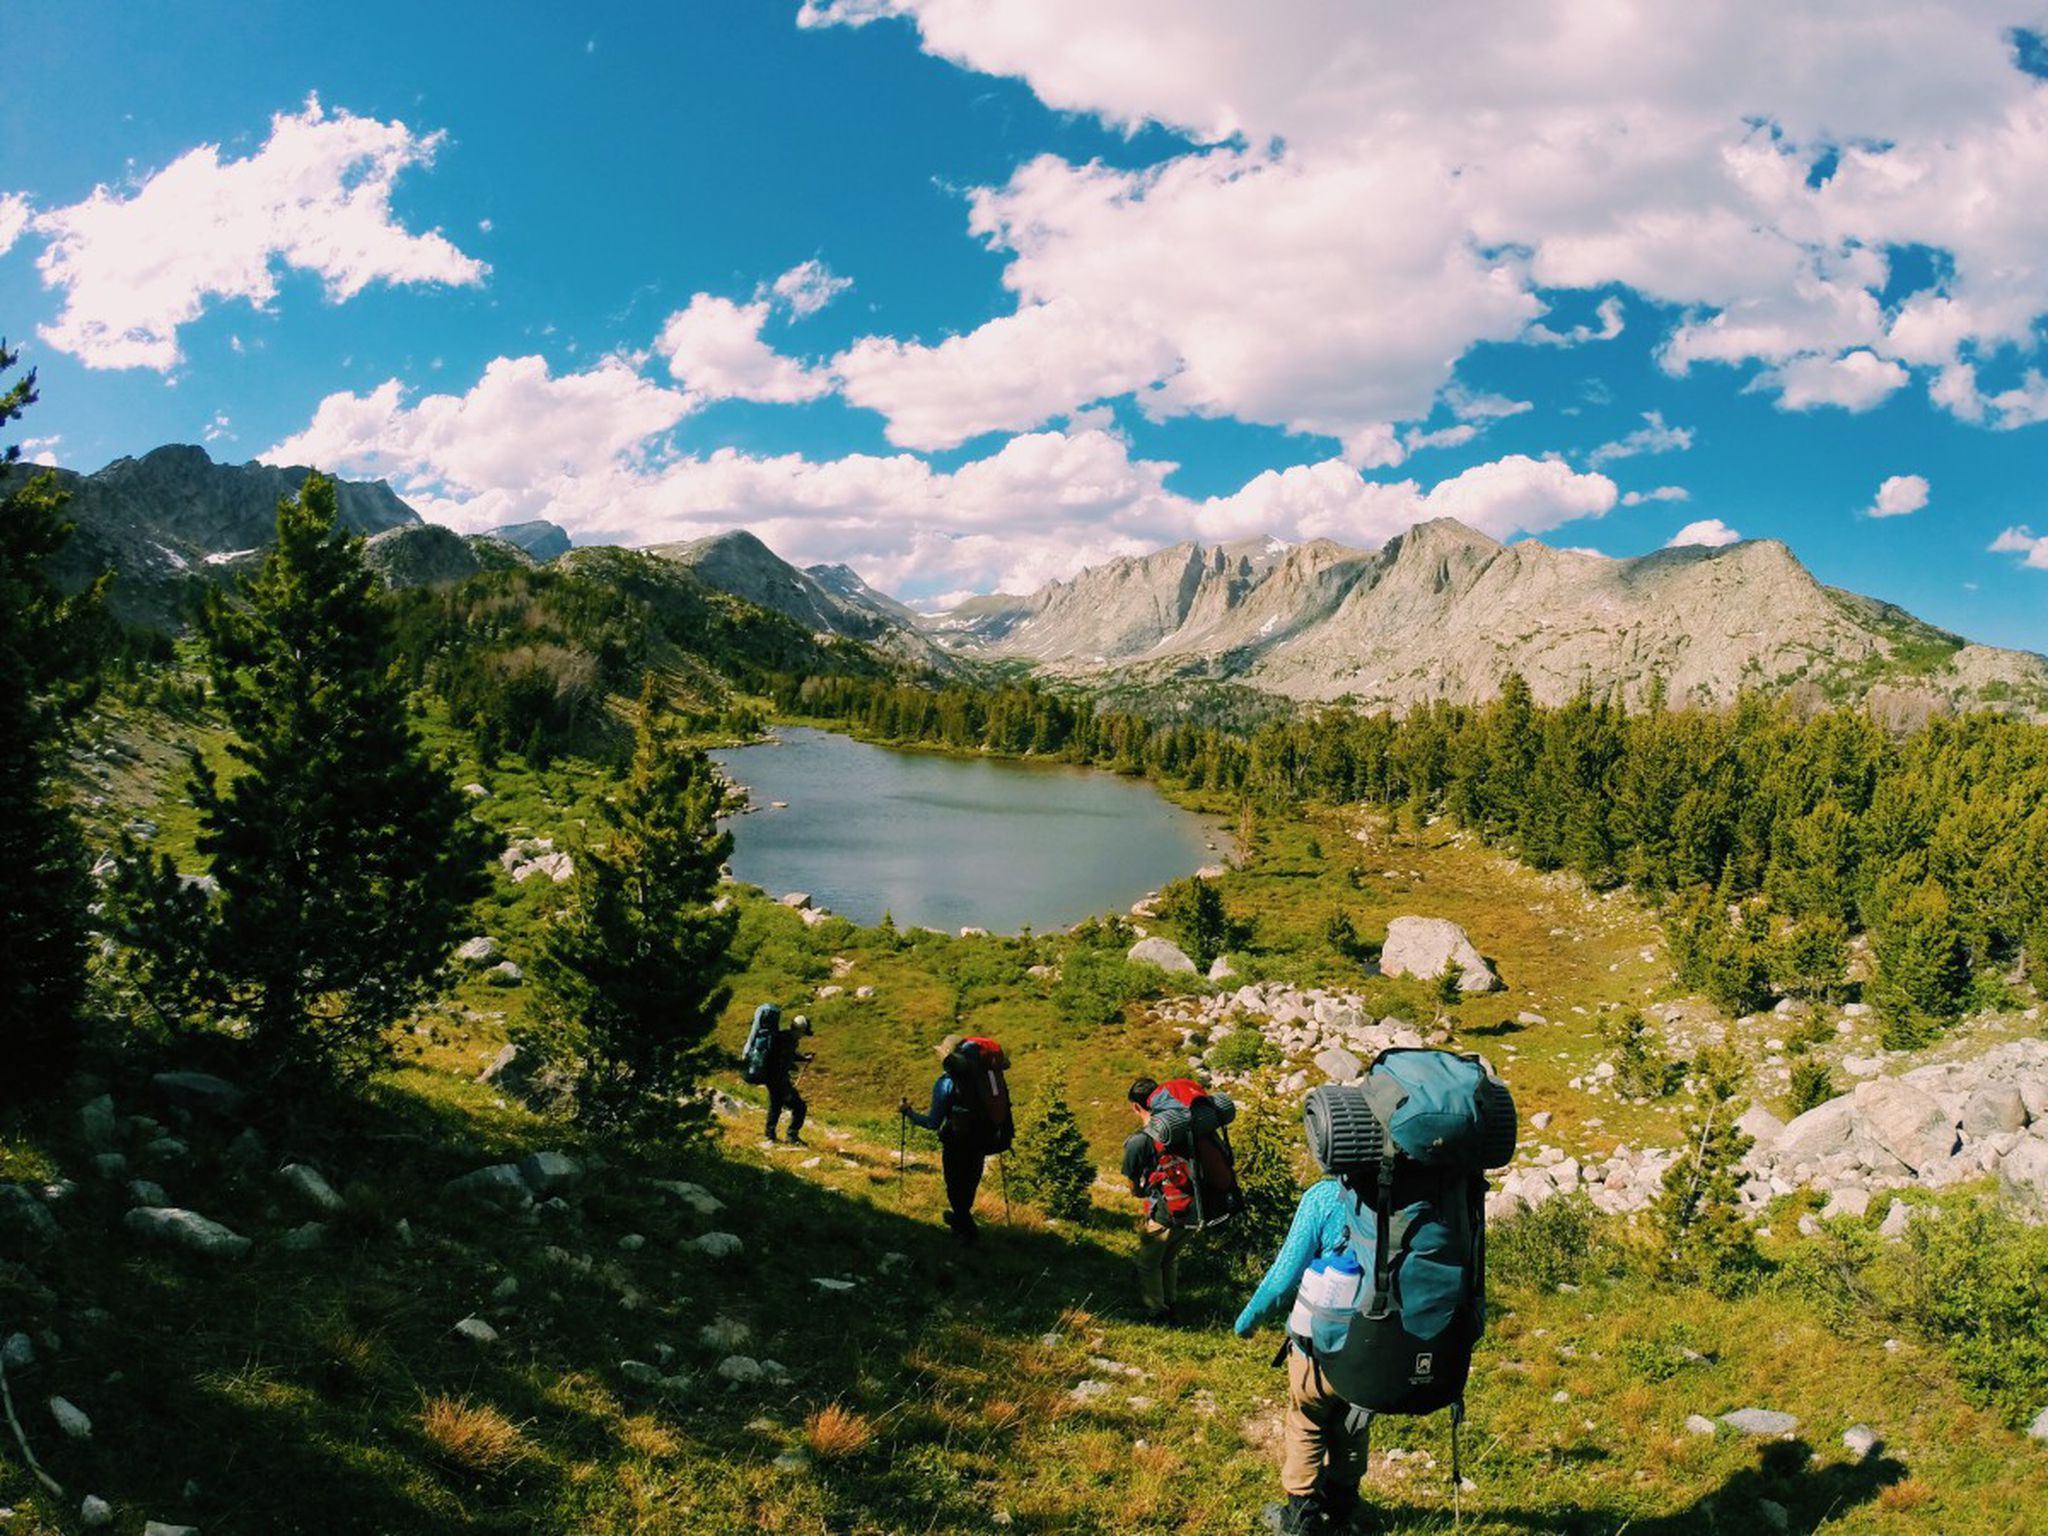 Summer Program - Hiking | NOLS Summer Semester in the Rockies